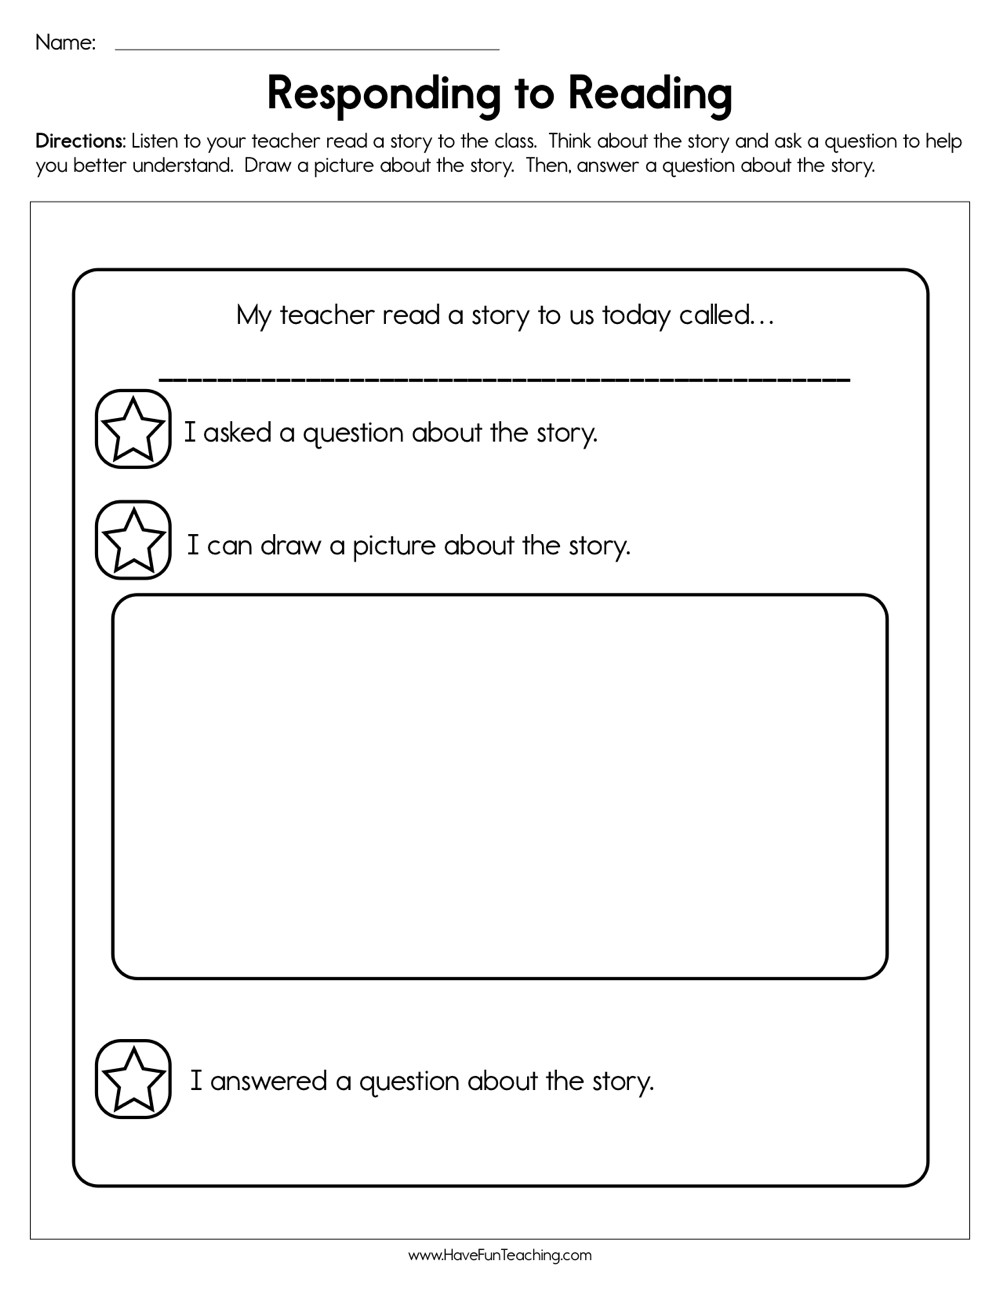 Read and Respond Worksheet Responding to Reading Worksheet